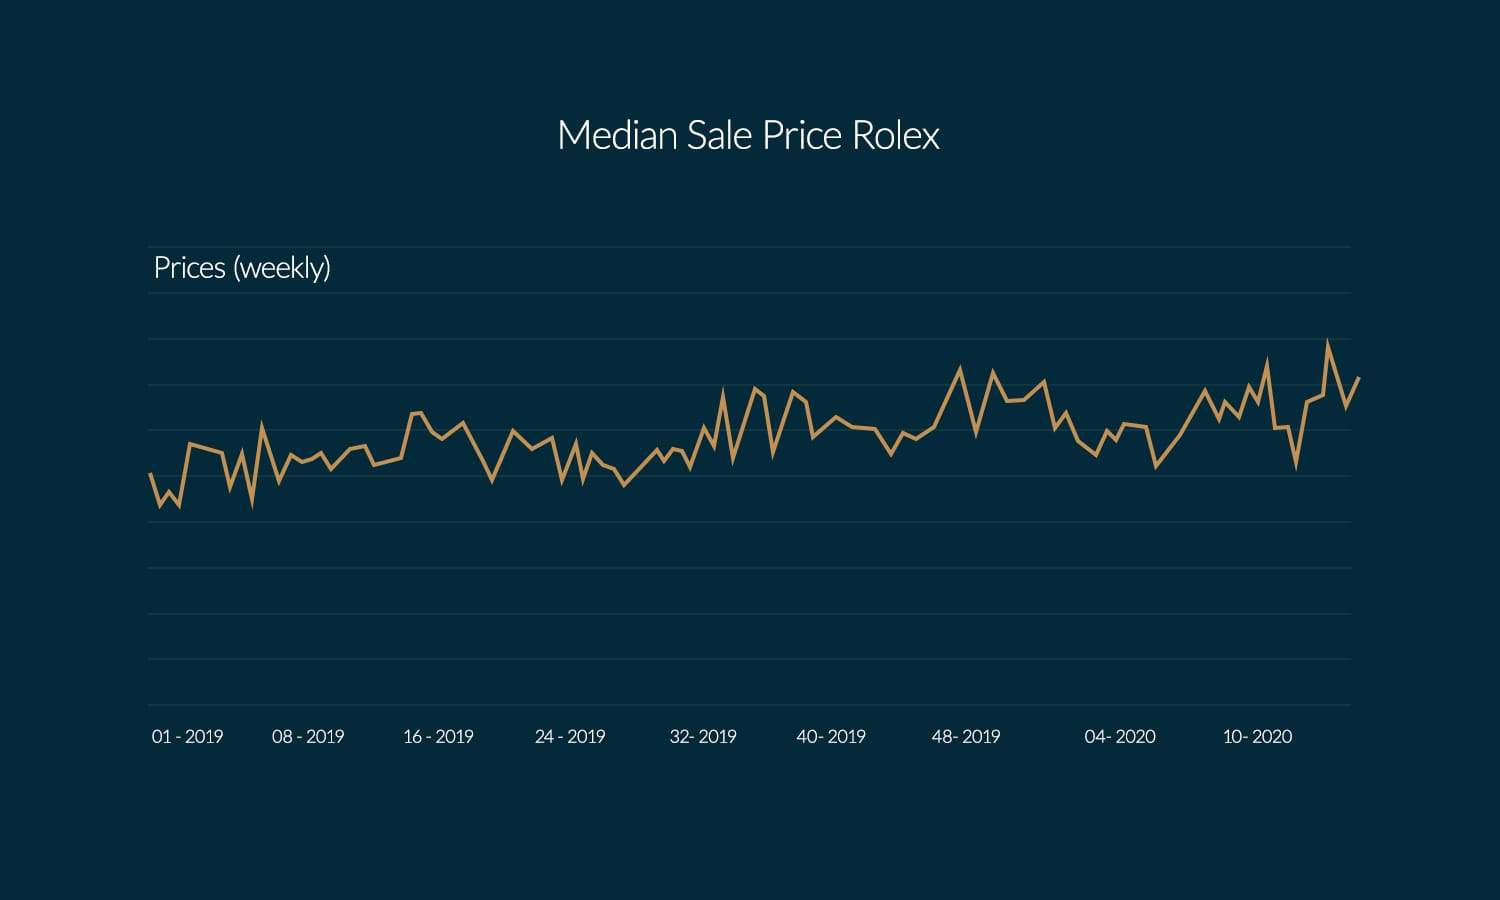 Median sales price for Rolex models on Chrono24